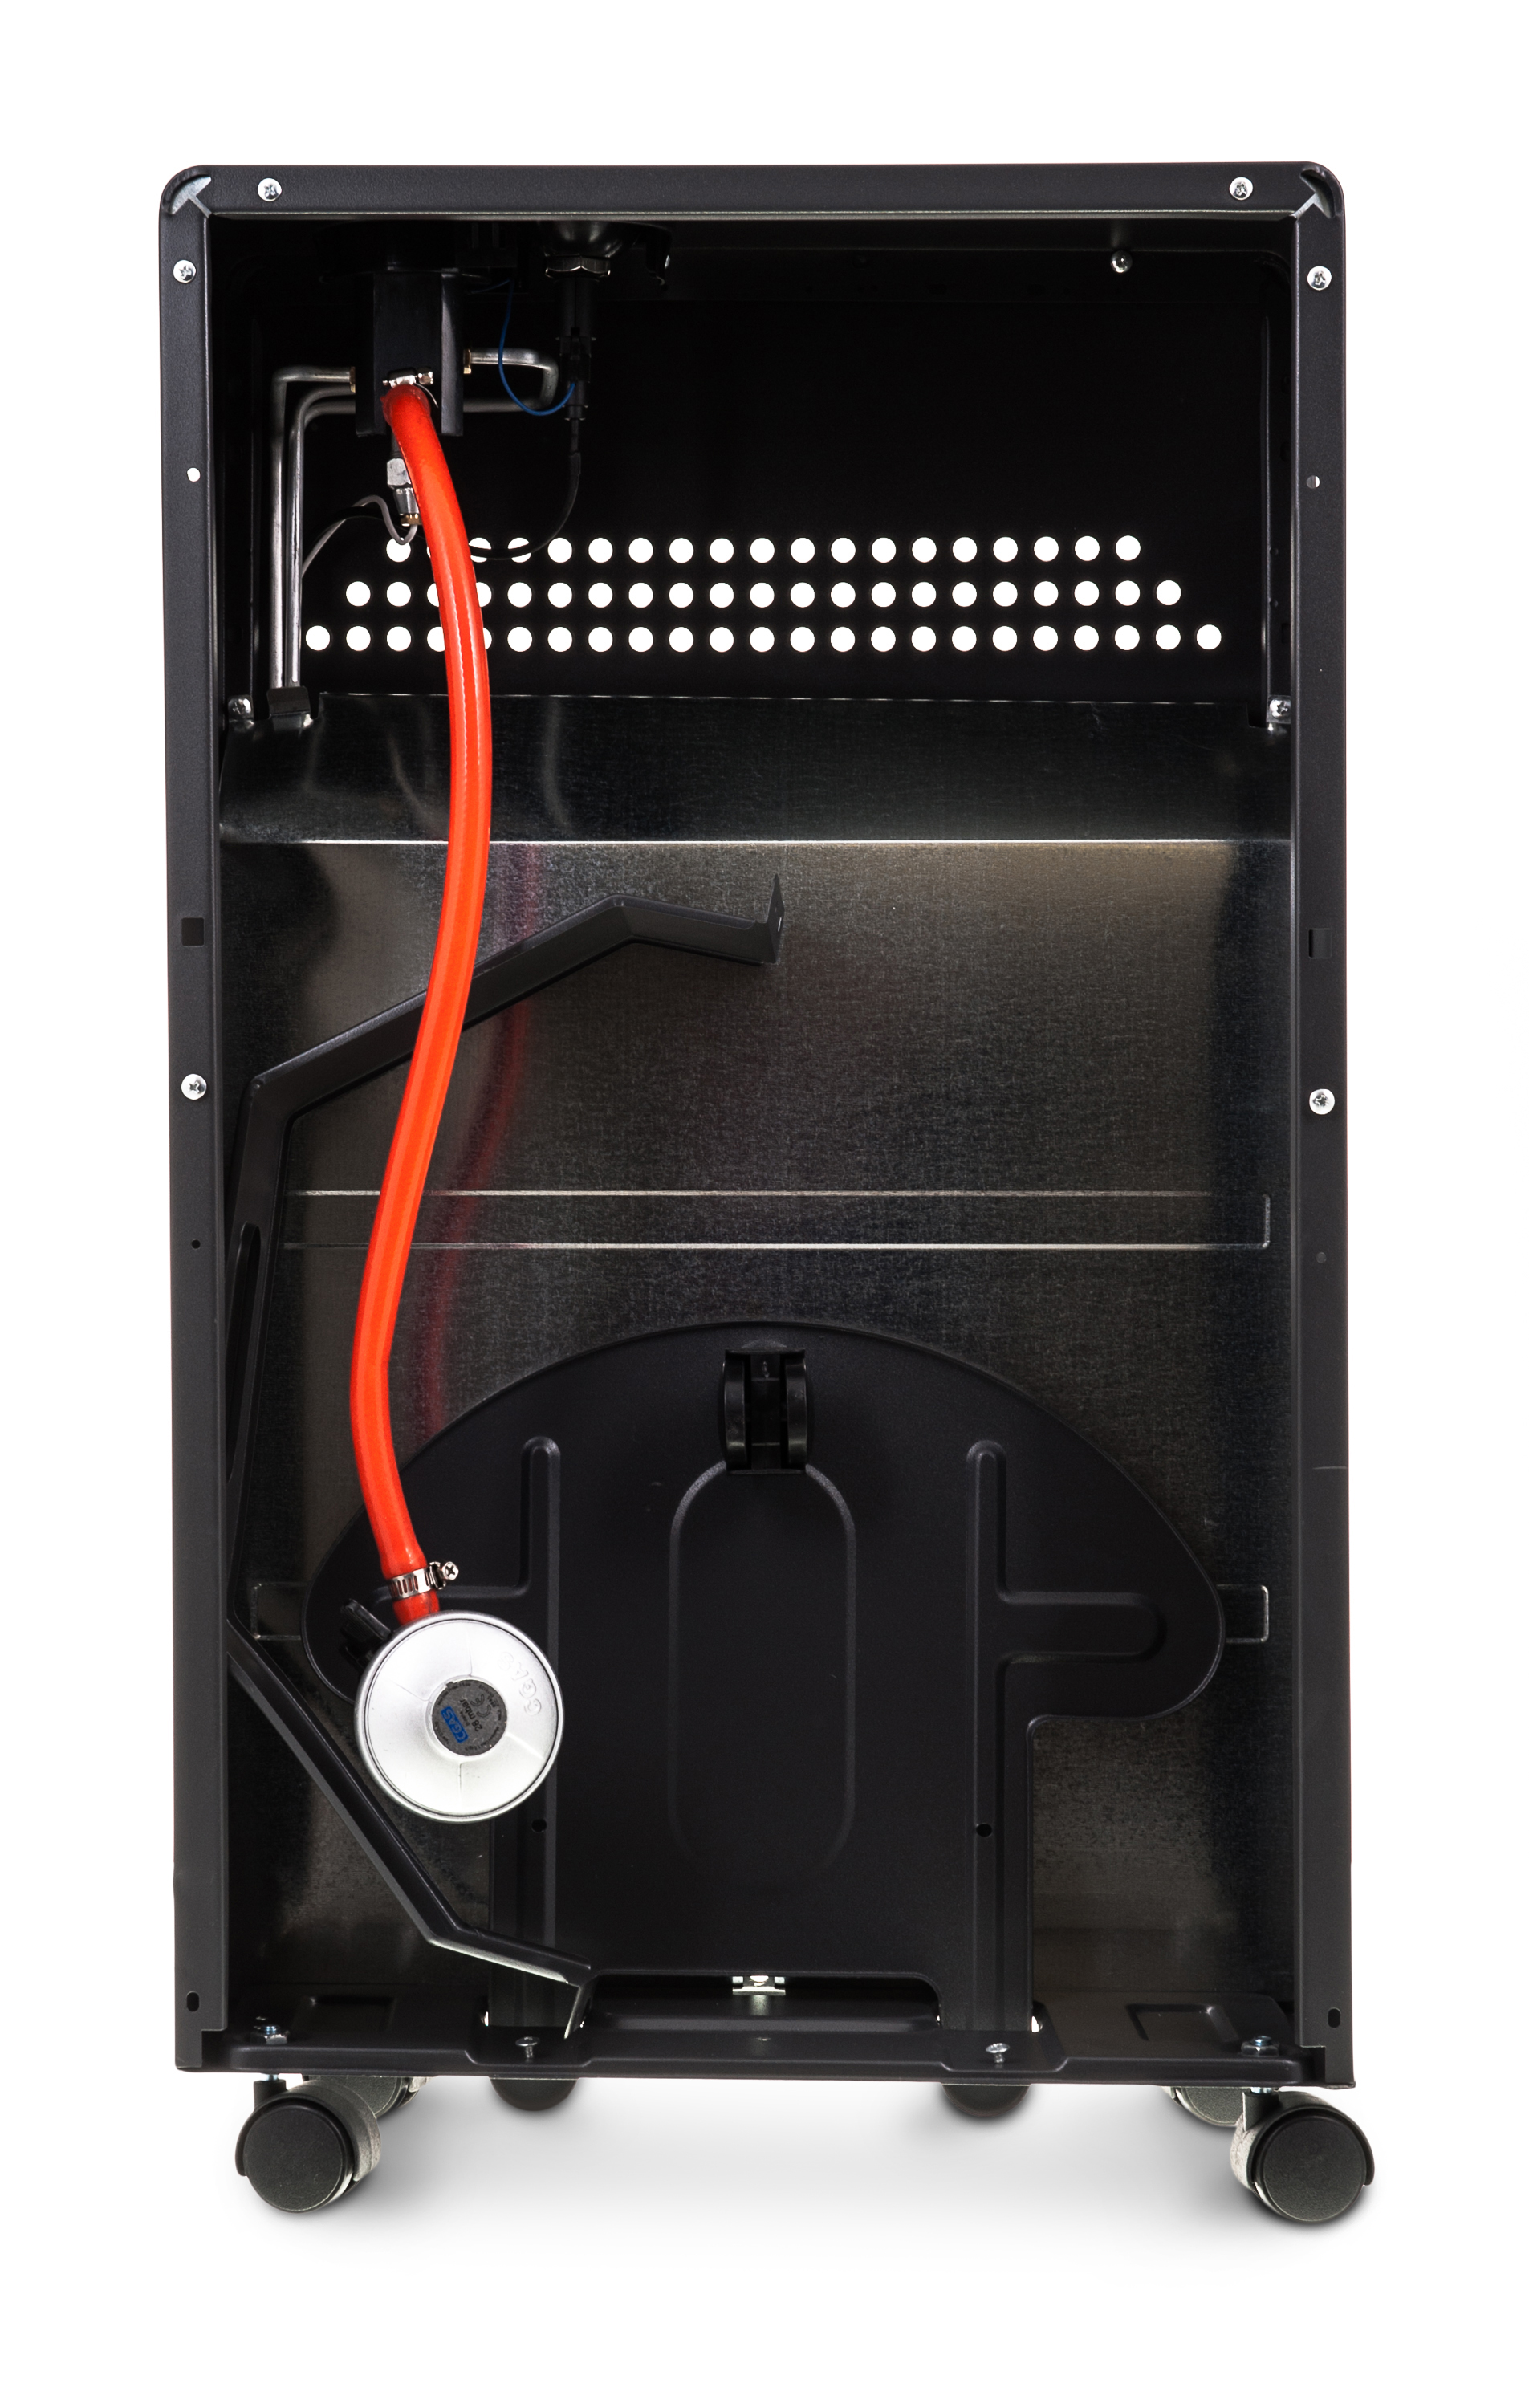 Kw calor gas portable cabinet heater fire butane with